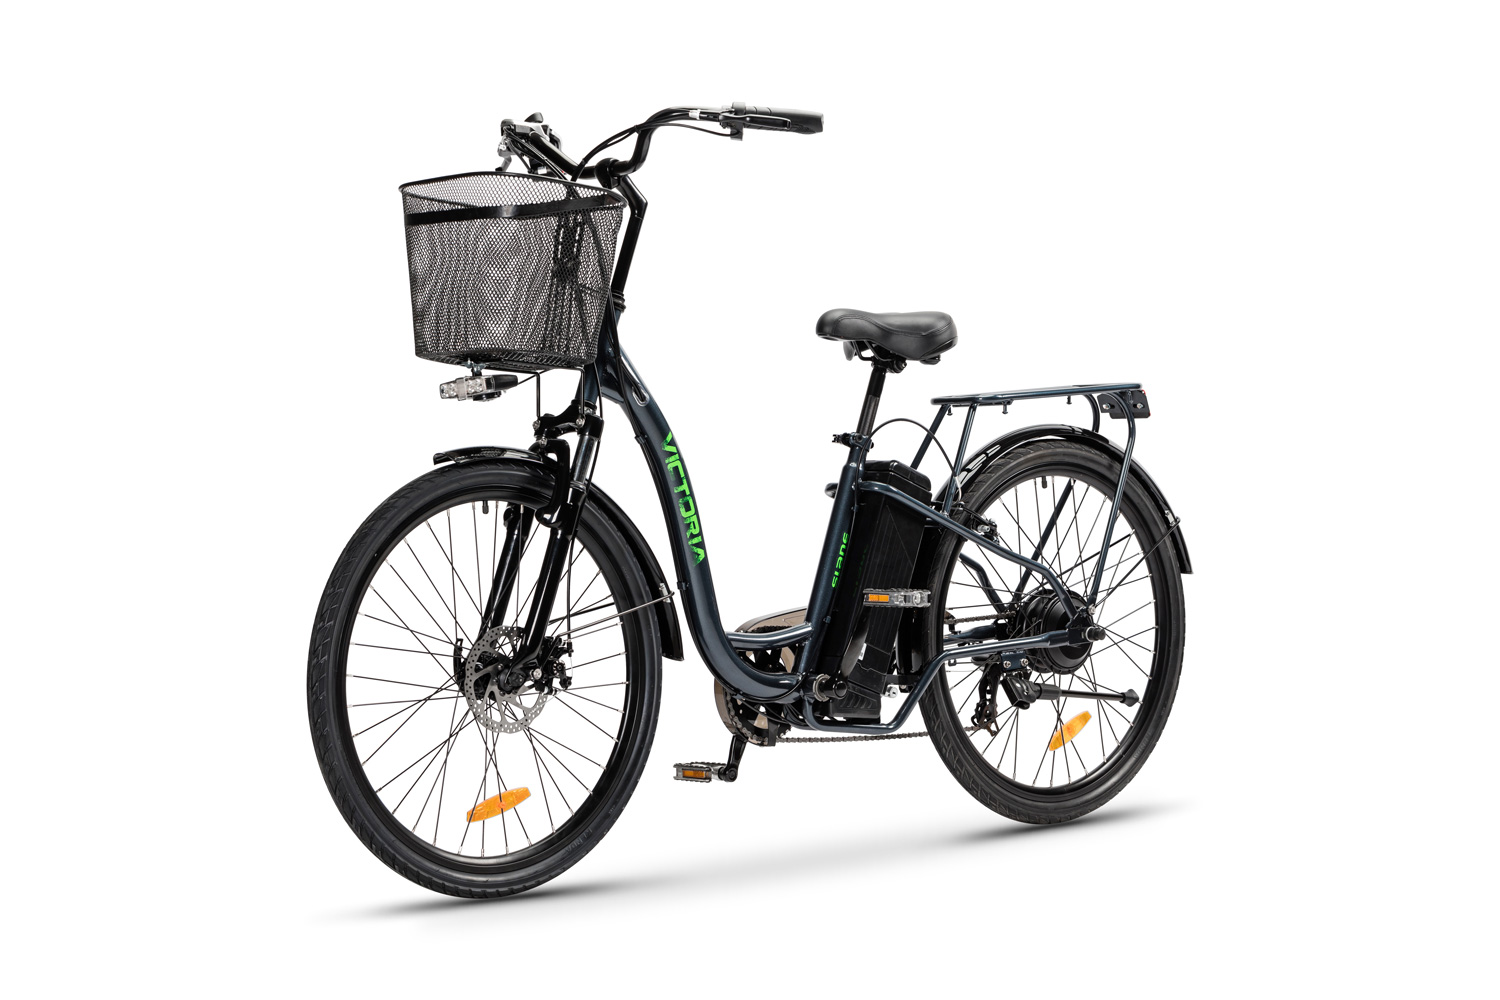 The Slane Victoria E-Bike with front carrying basket in a gray color